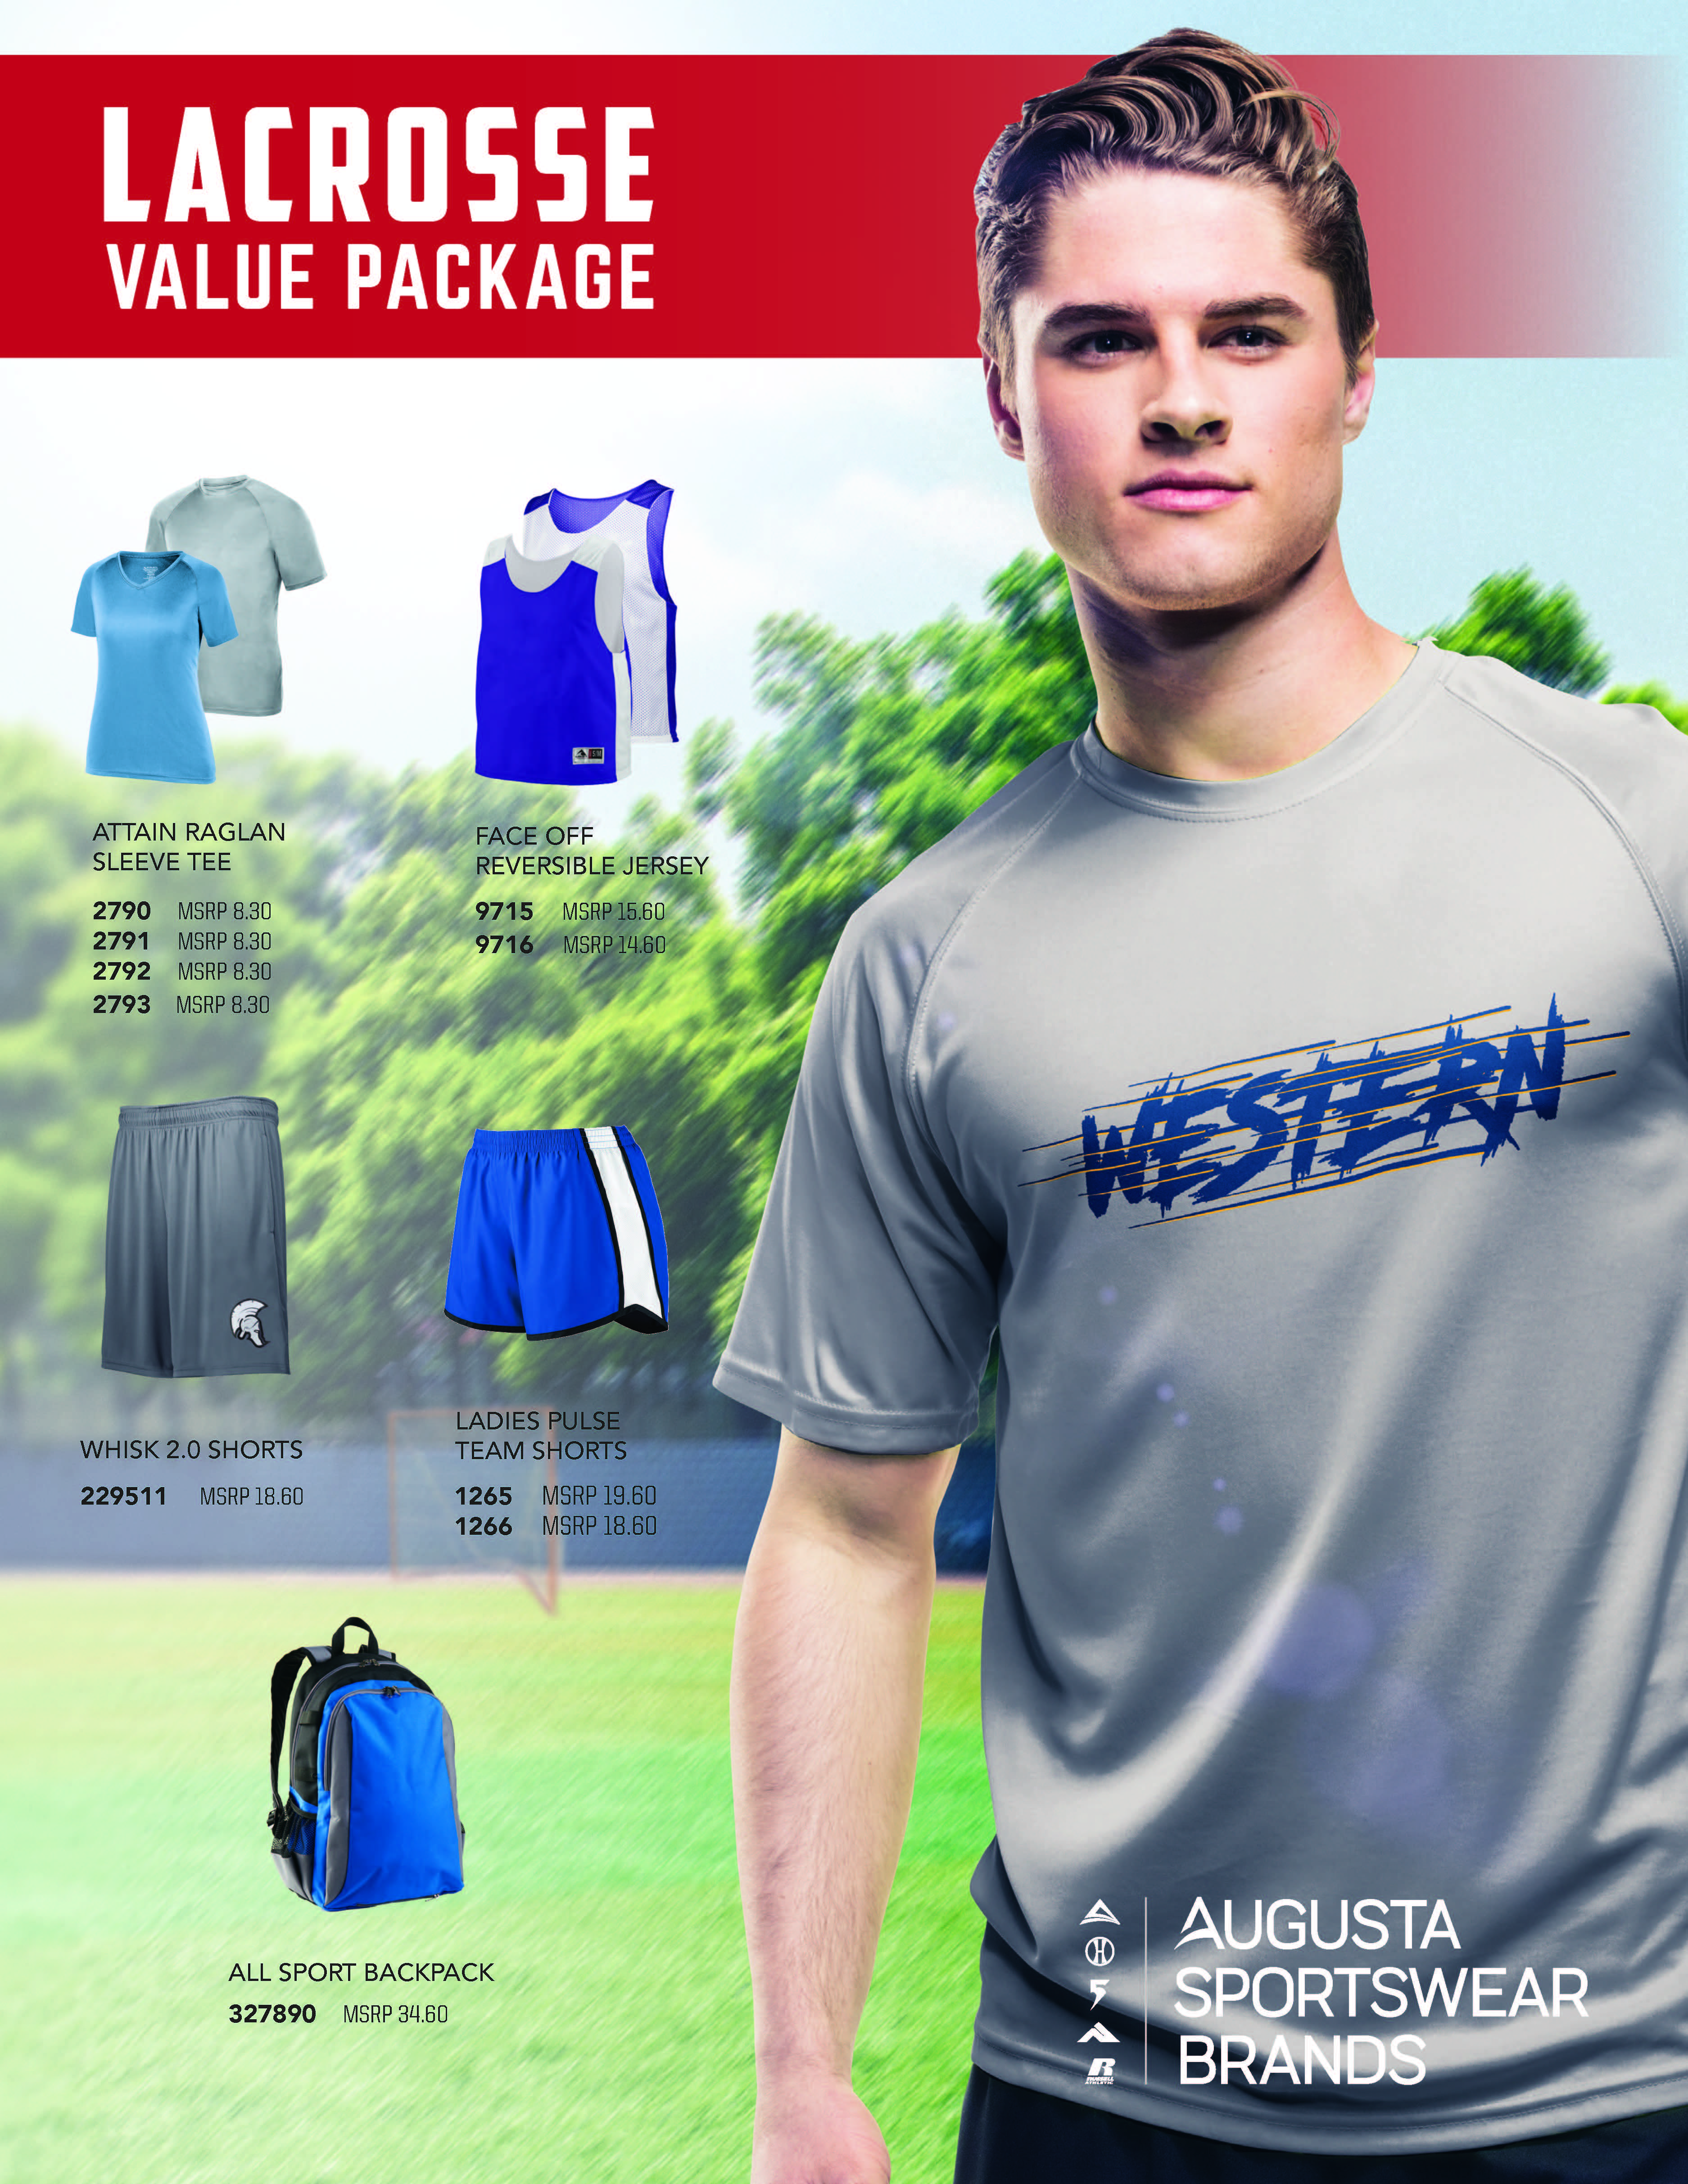 Lacrosse value bundle